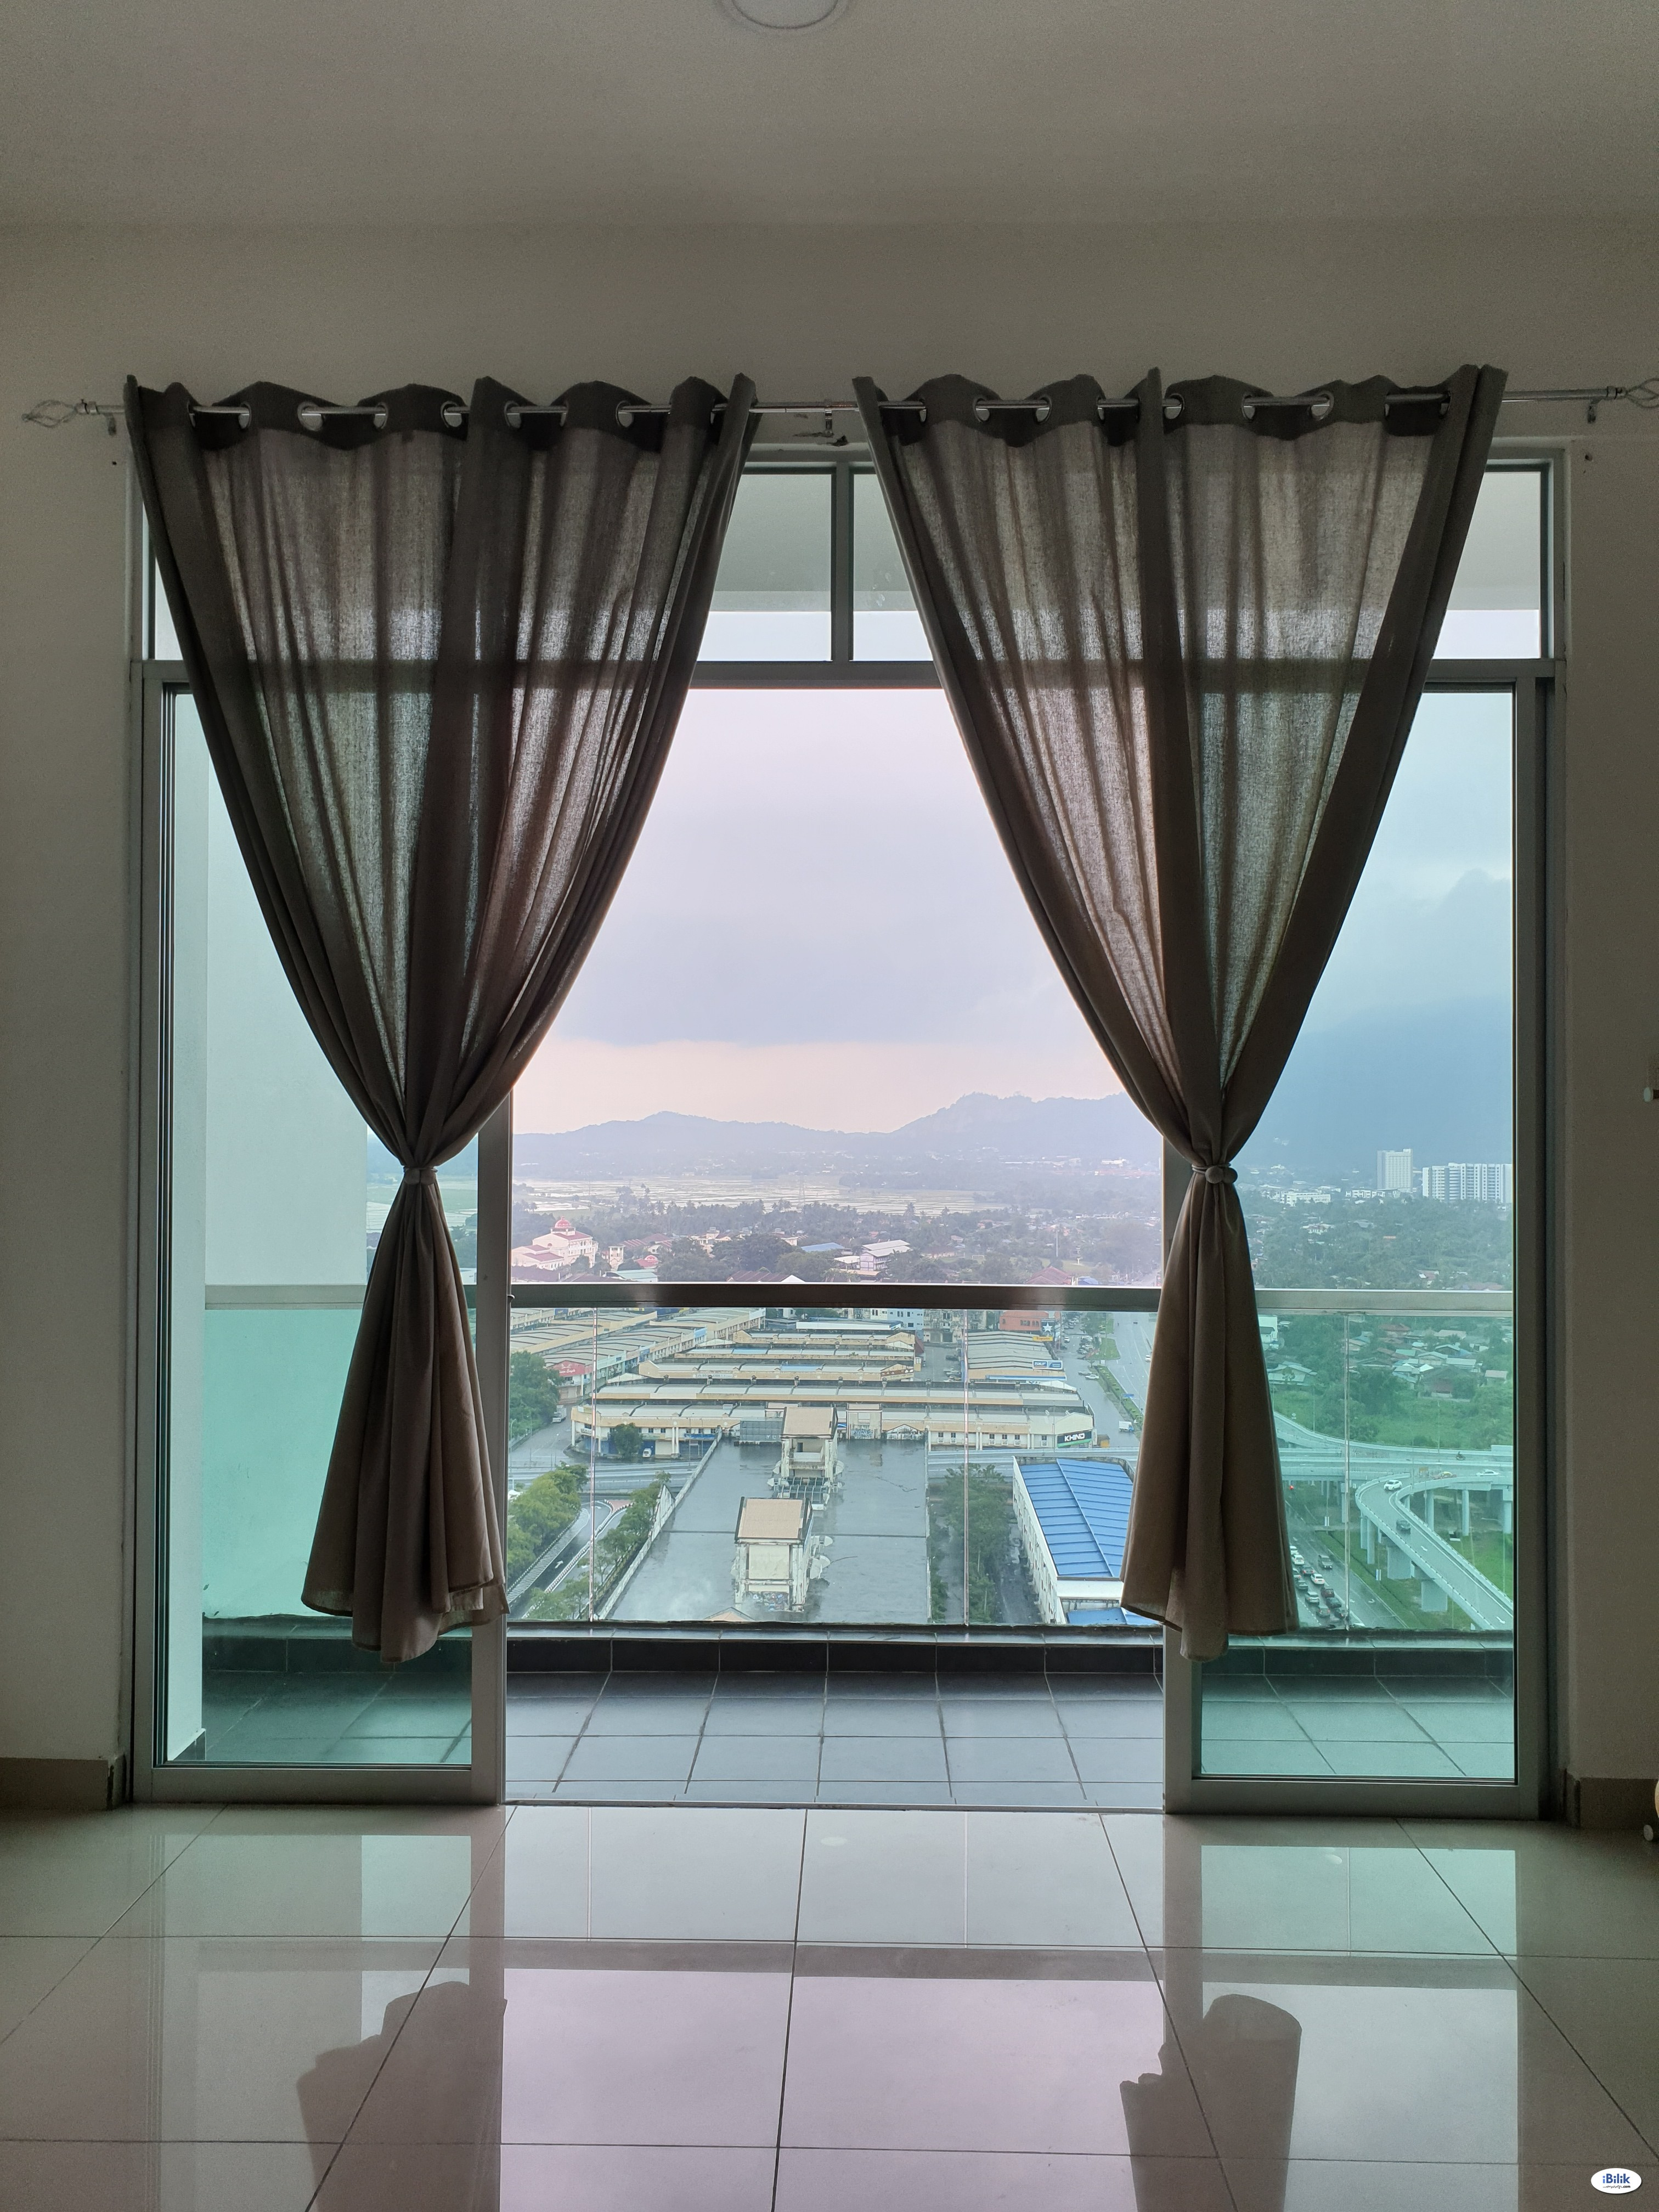 Private Room - Shared Apartment at BM City Mall (Condo), Bukit Mertajam, Pulau Pinang